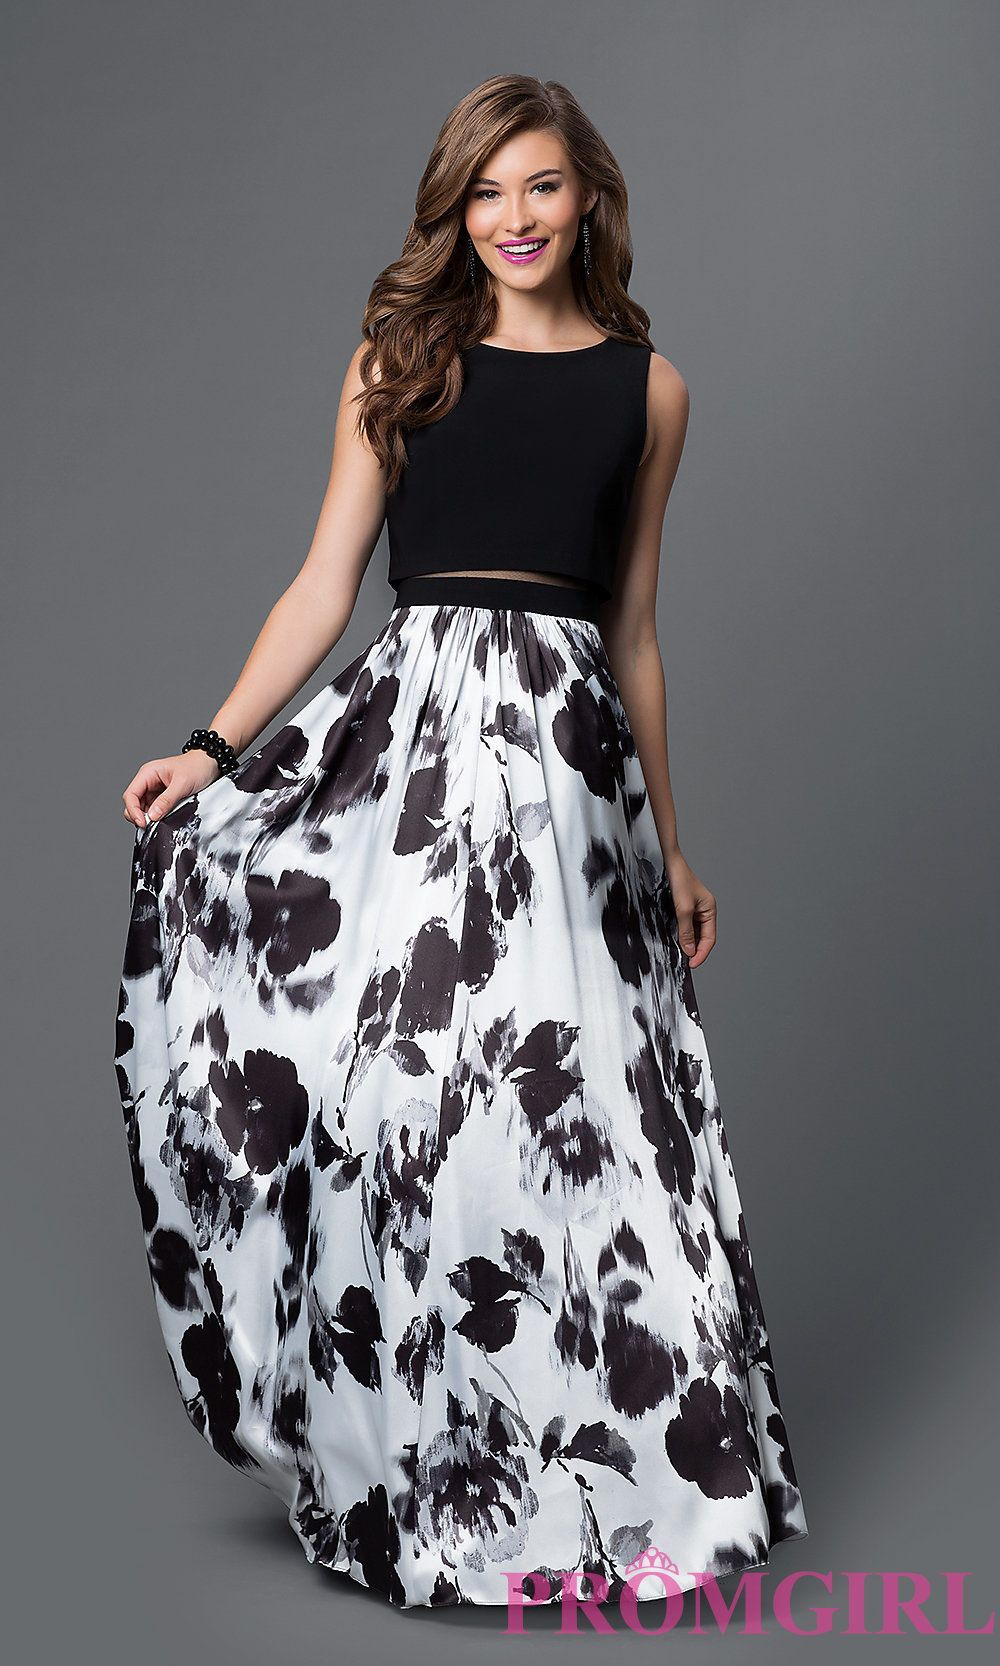 Style It 3476 Front Image Dresses Pinterest Prom Homecoming